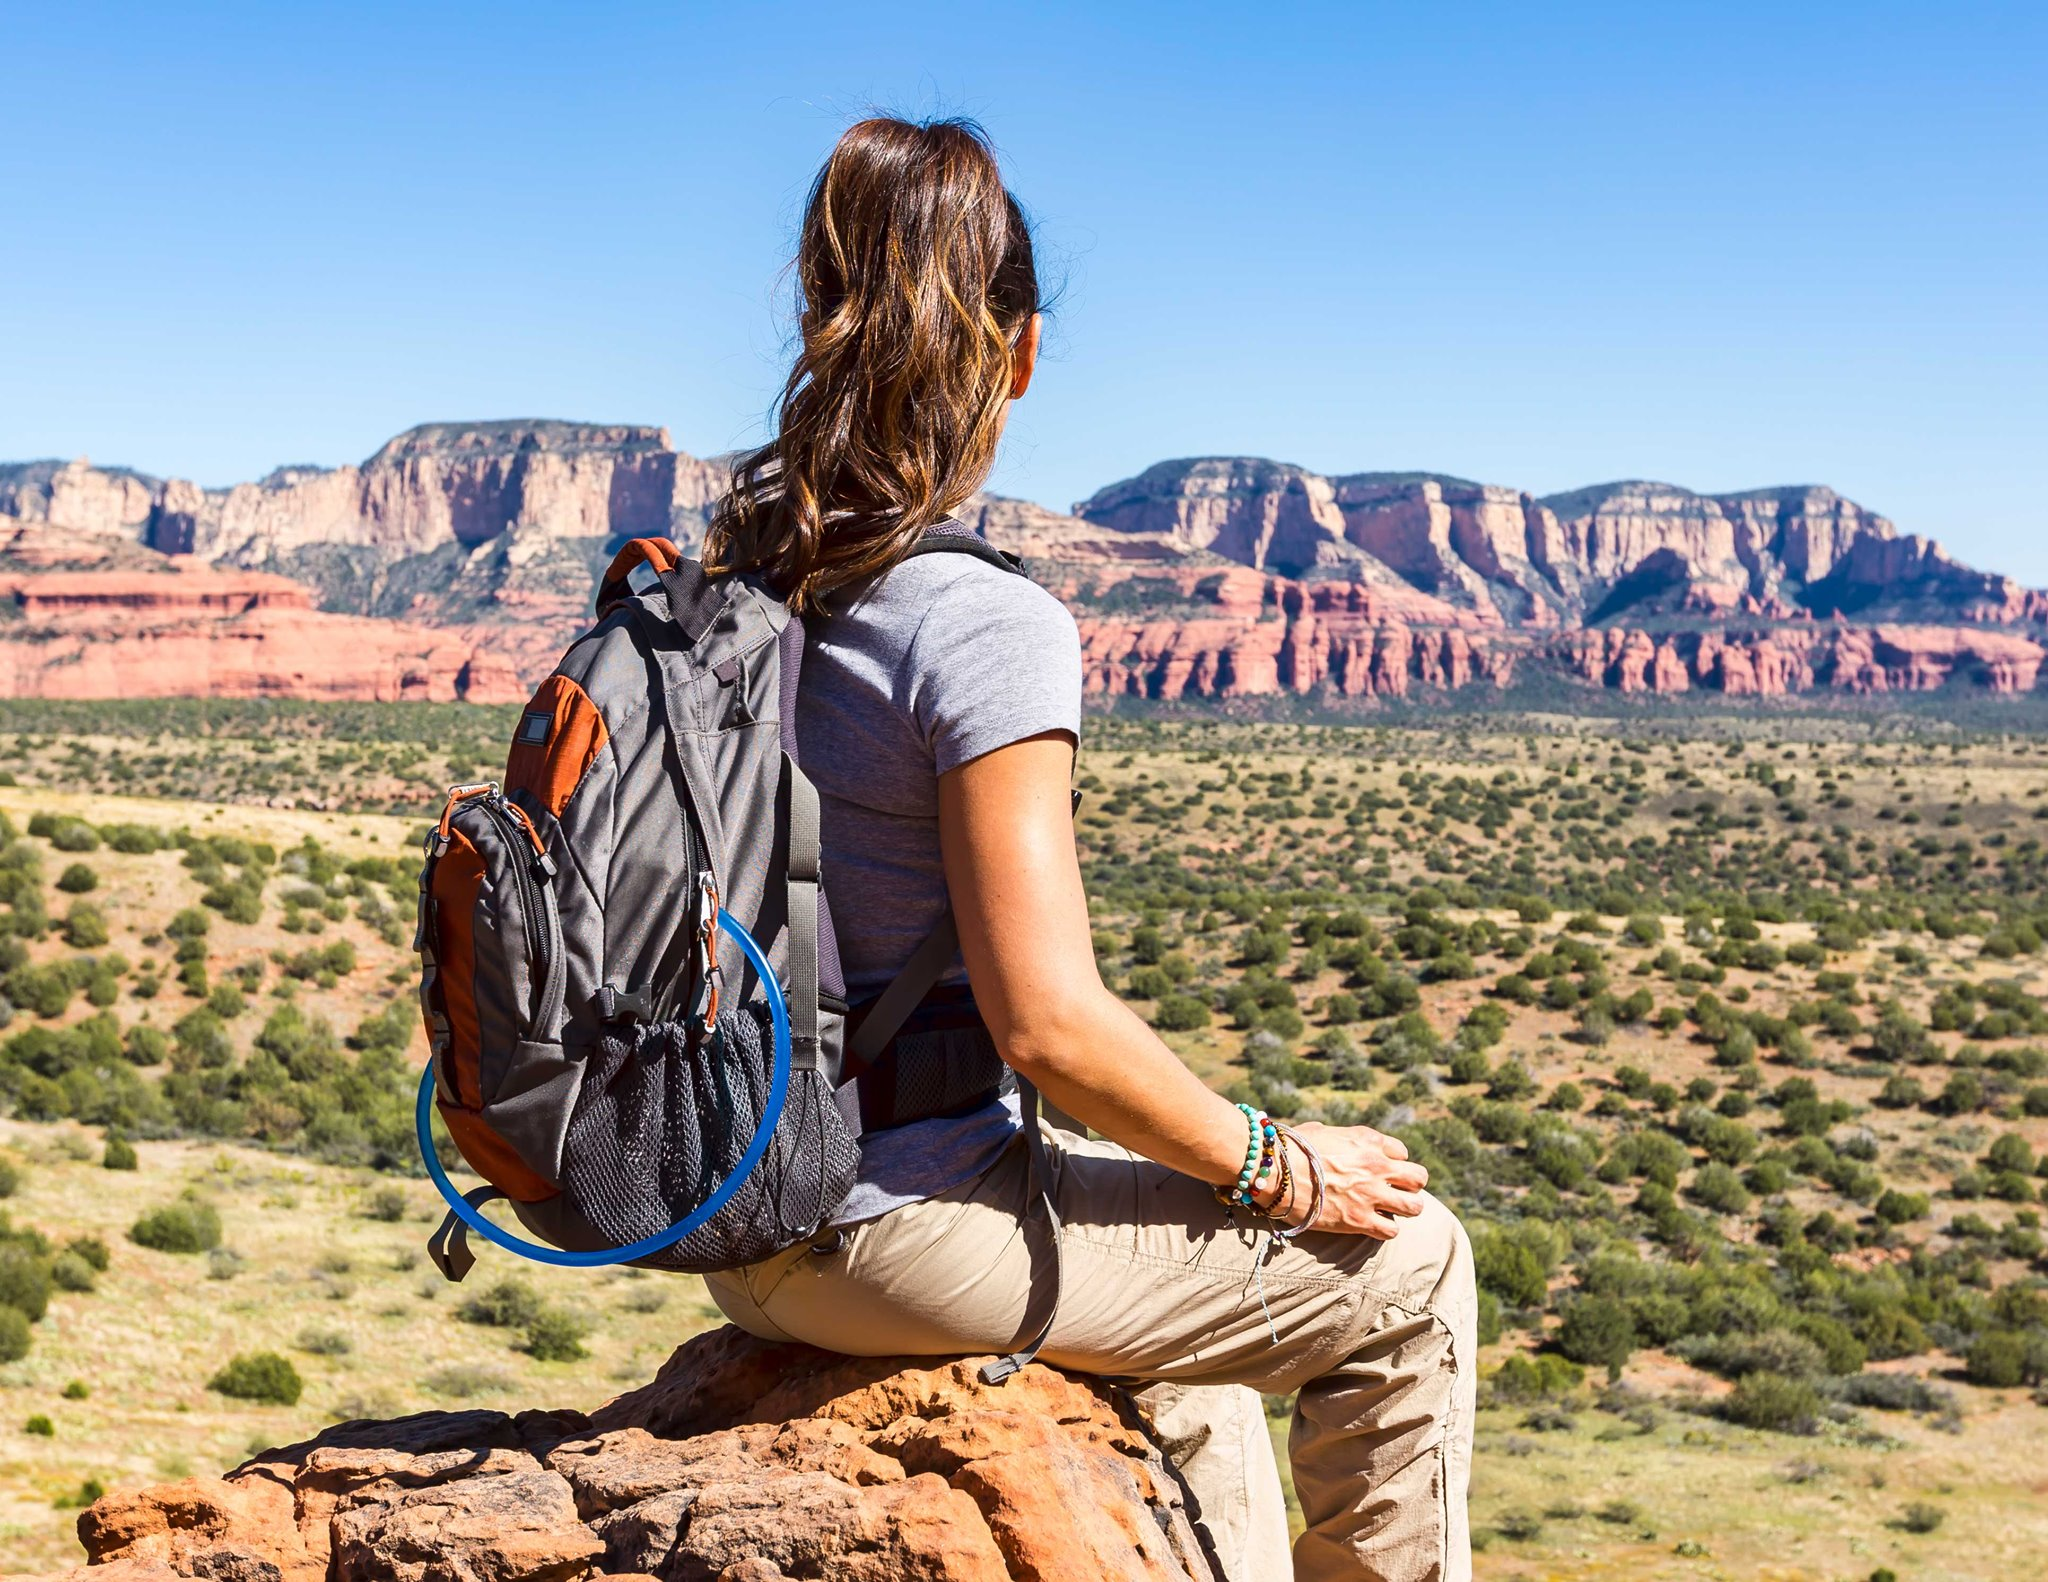 Photo of a young woman from the back with a backpack on looking out at Utah mountains.